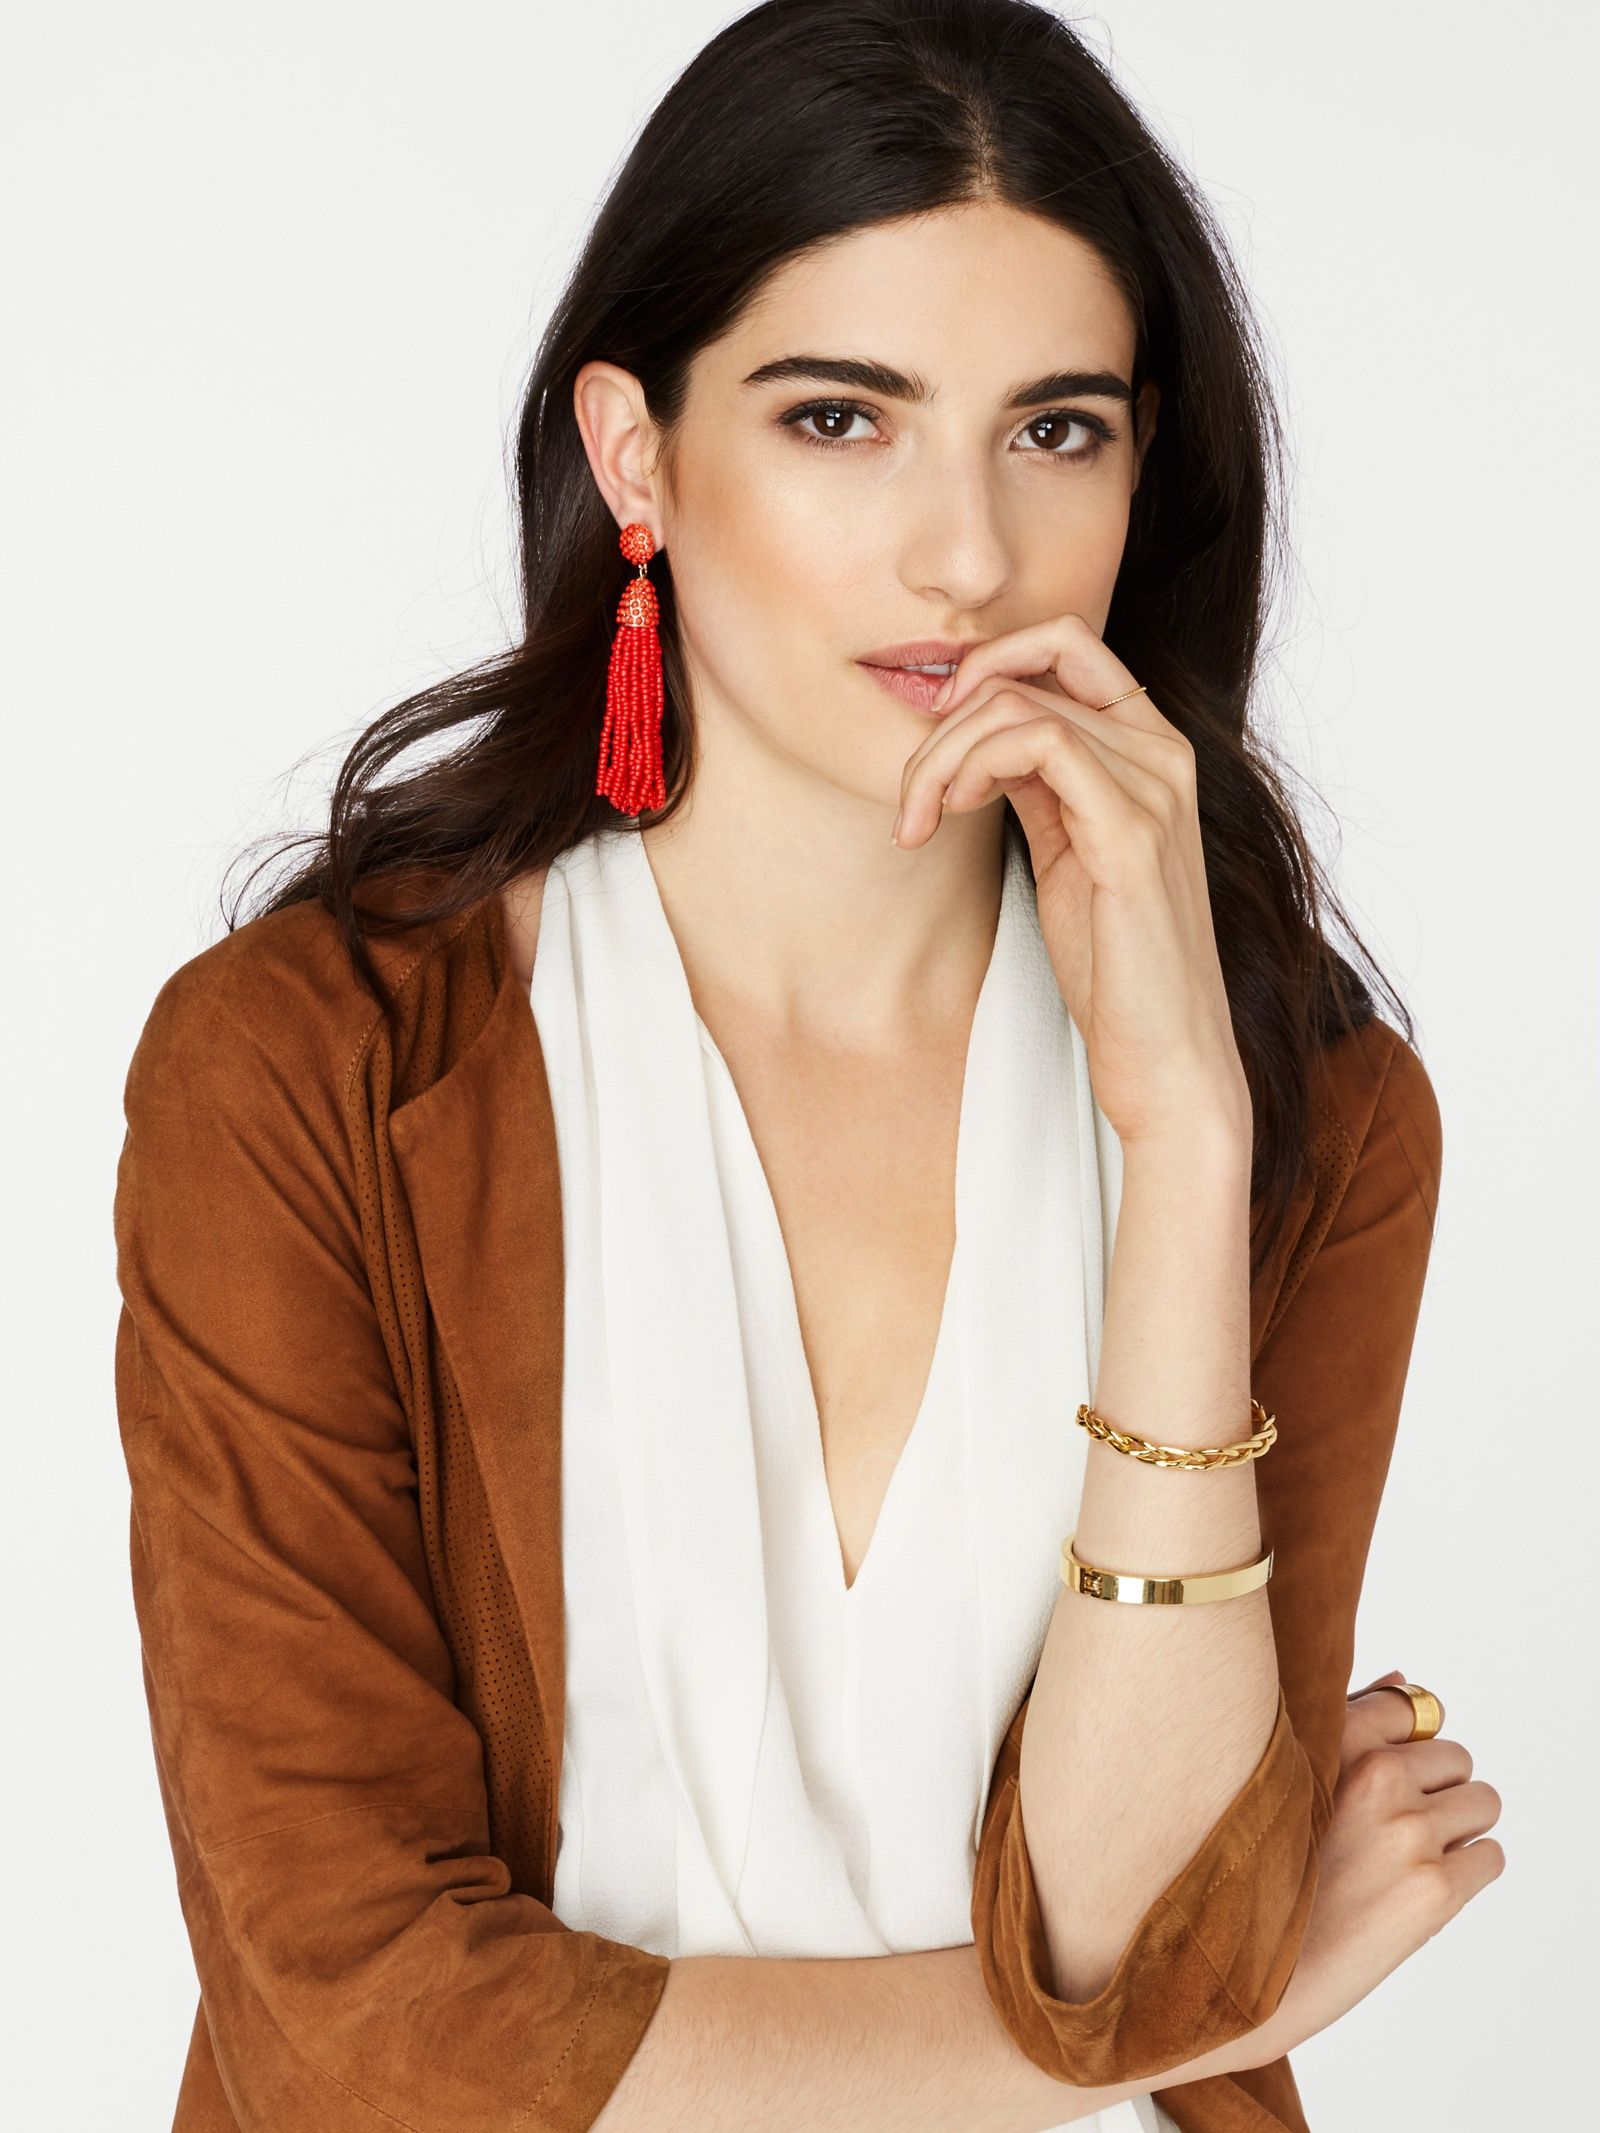 c436a2bff Bold beaded tassel earrings are a fresh, festive approach to a  monochromatic outfit.